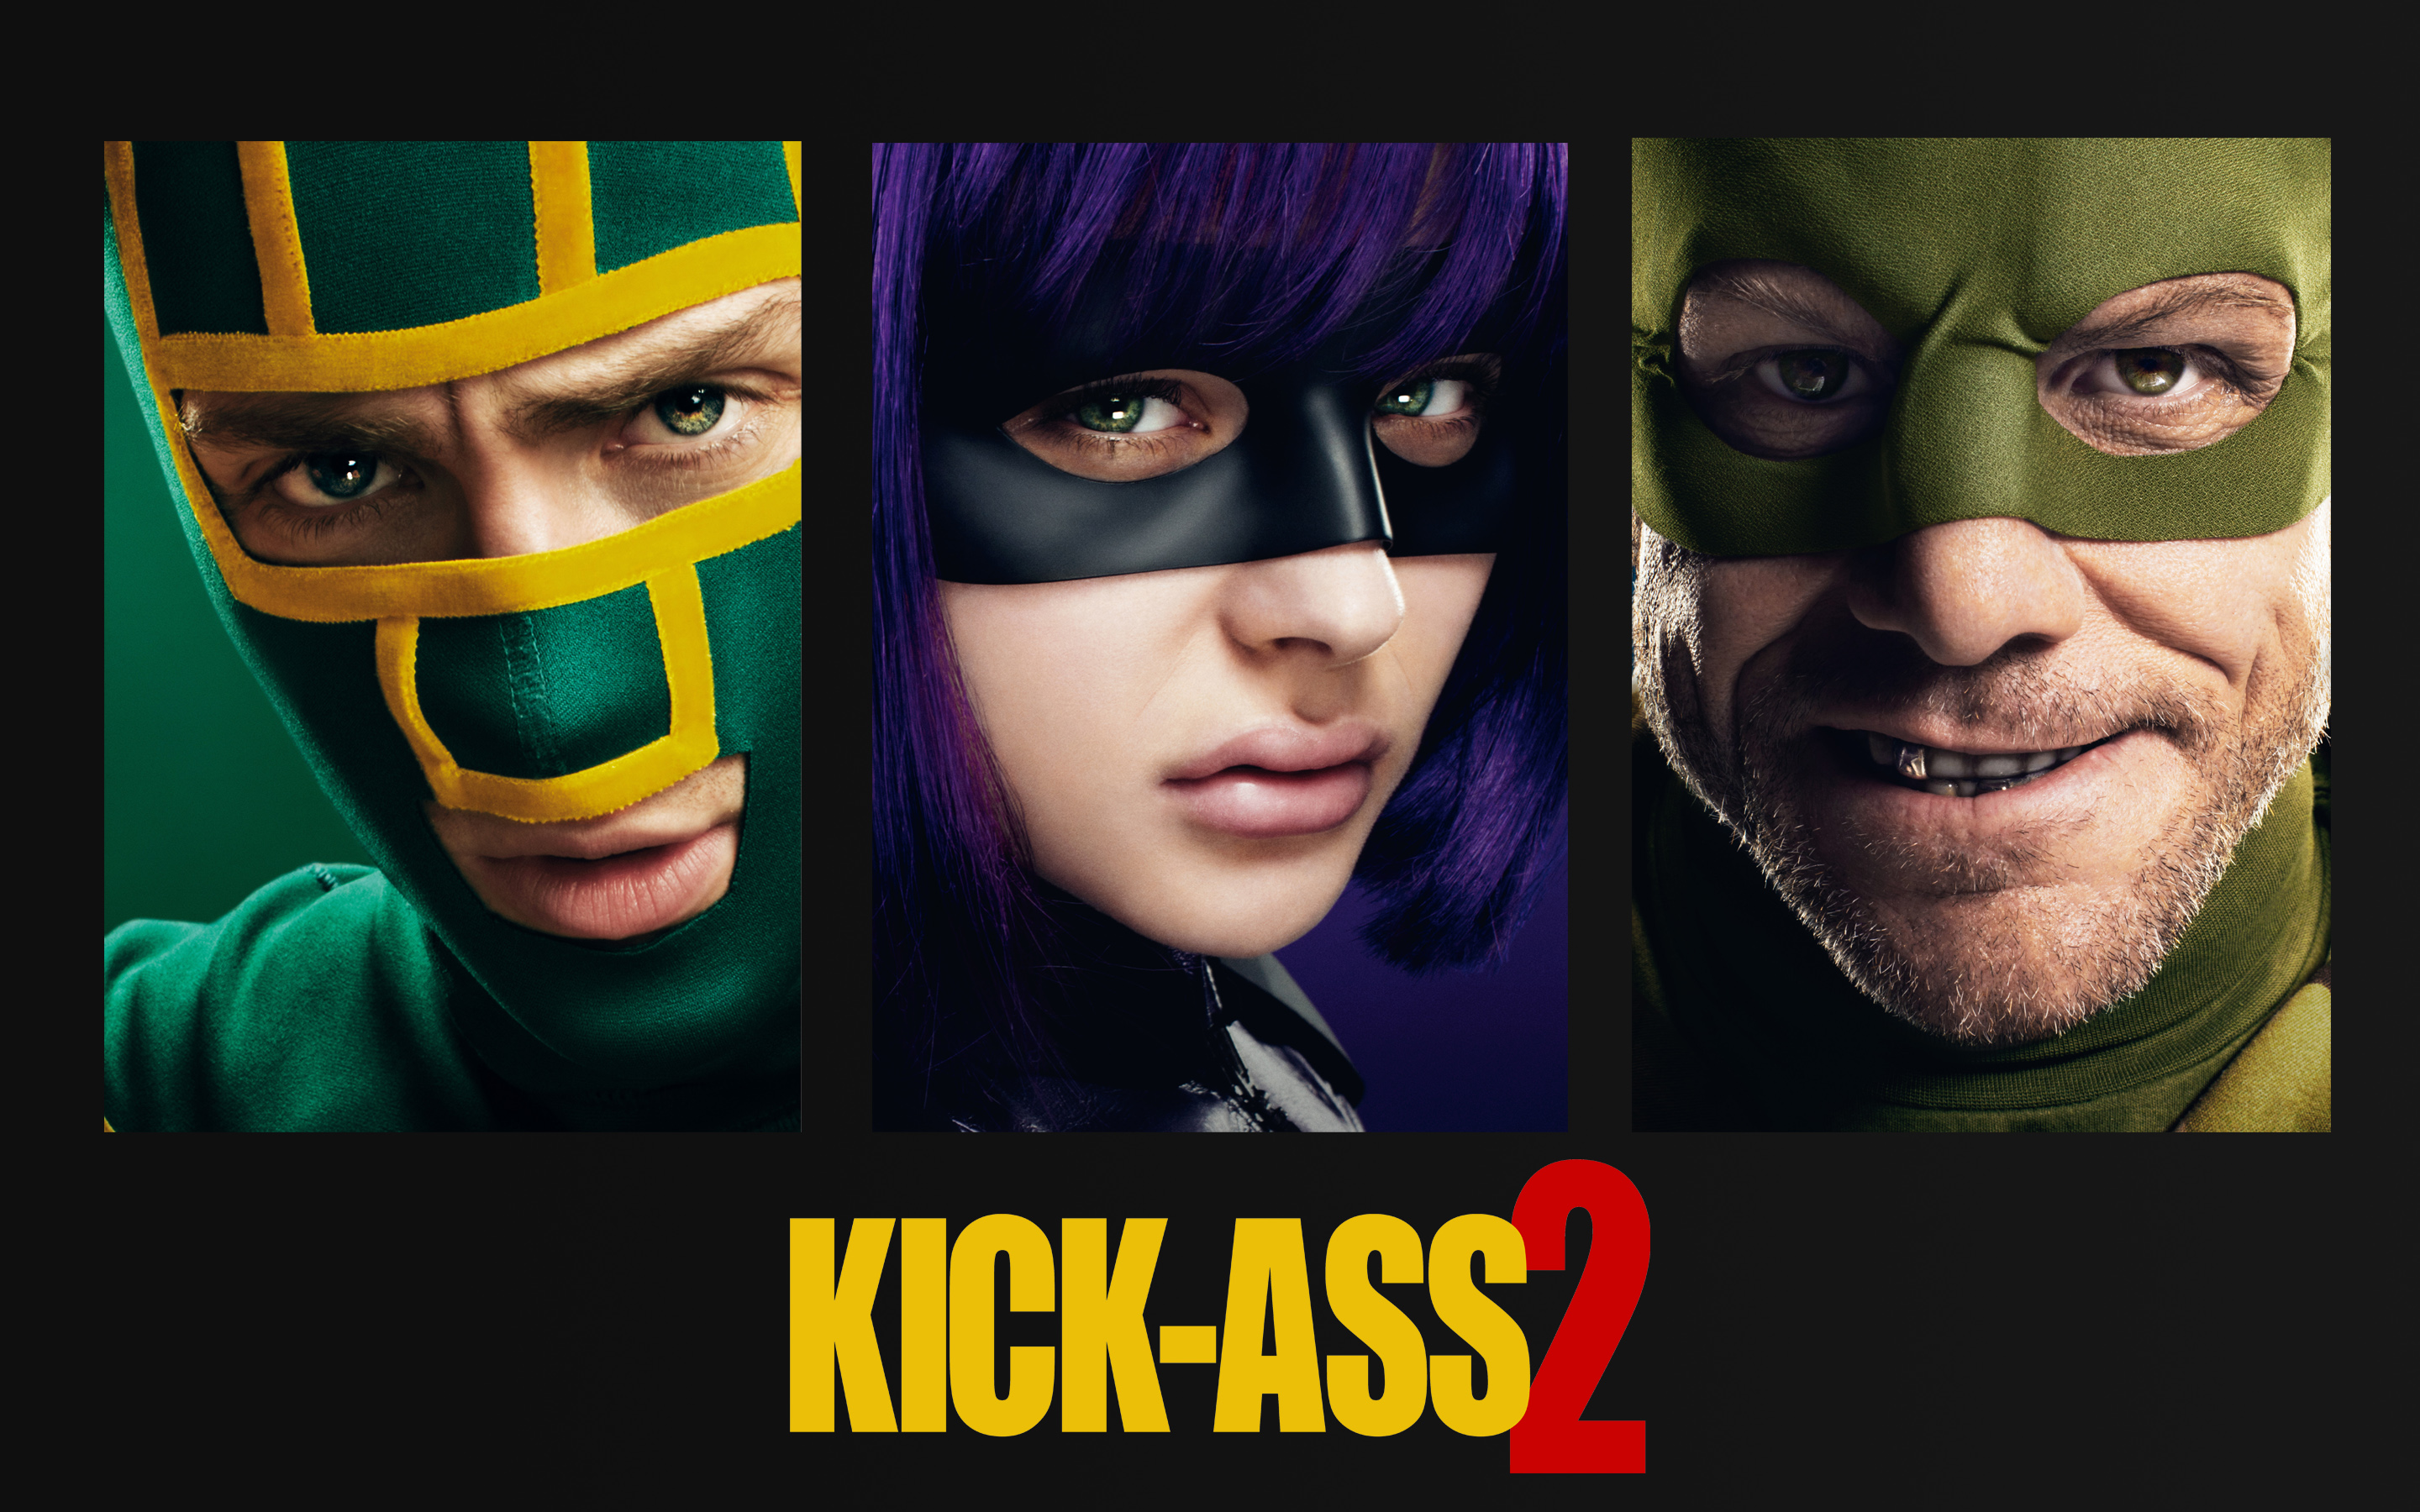 Kick Ass 2 2013 Movie 3876.86 Kb